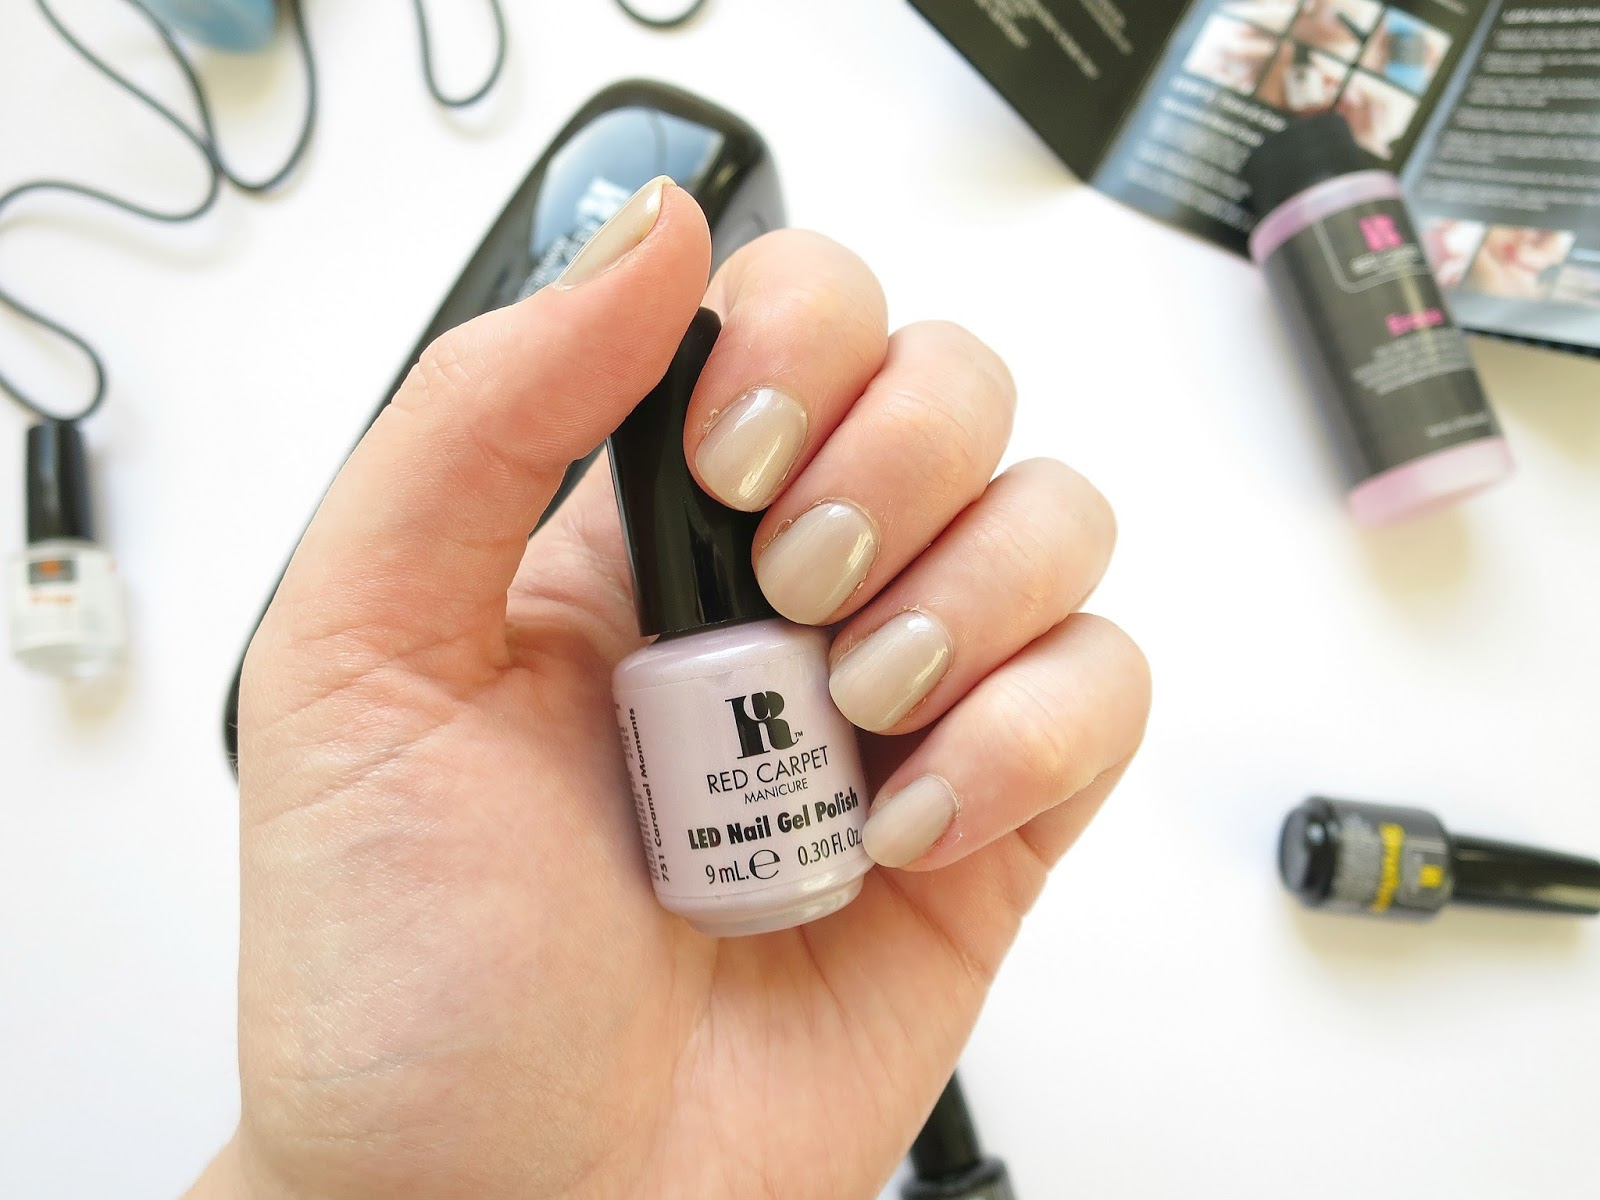 Red Carpet Manicure Gel Nails Starter Kit | Lilies and Lipbalm